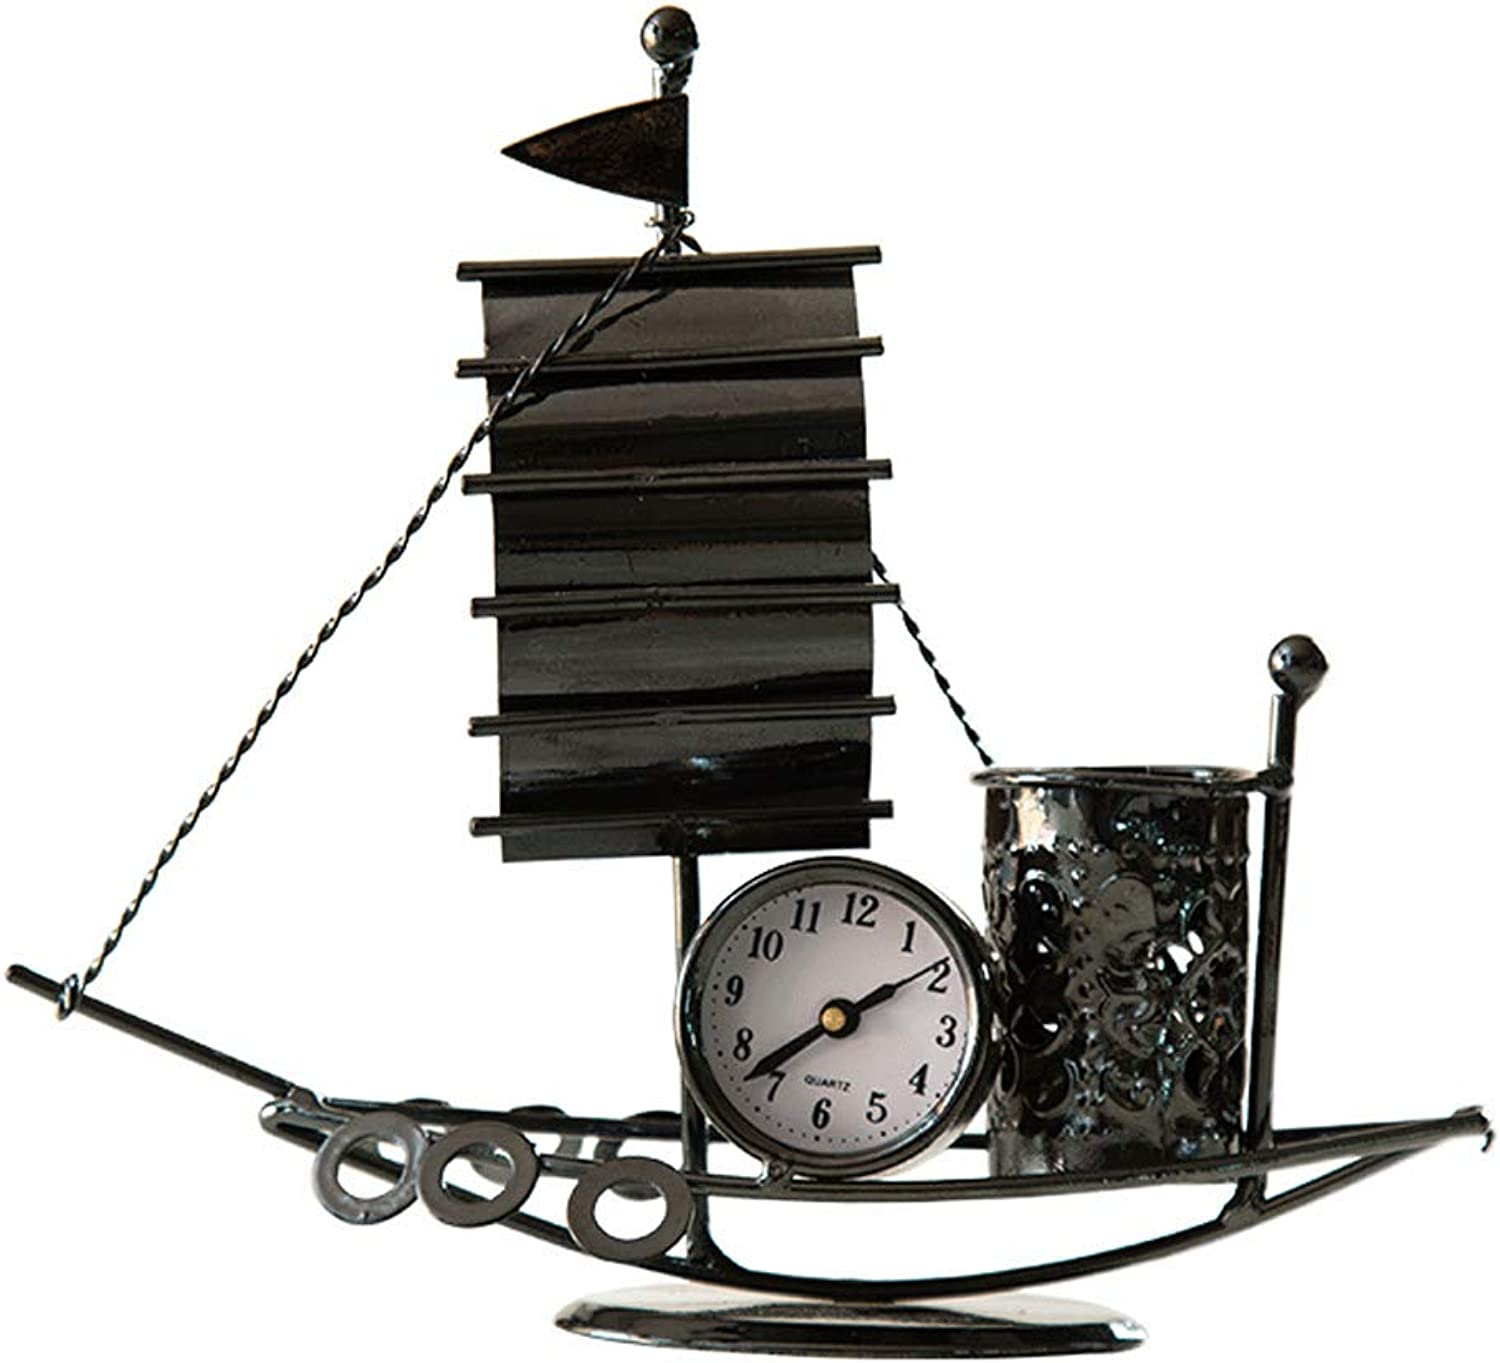 Table Accessories Statue Iron Crafts Sailing Clock Pen Holder Desktop Simple Decorative Ornaments